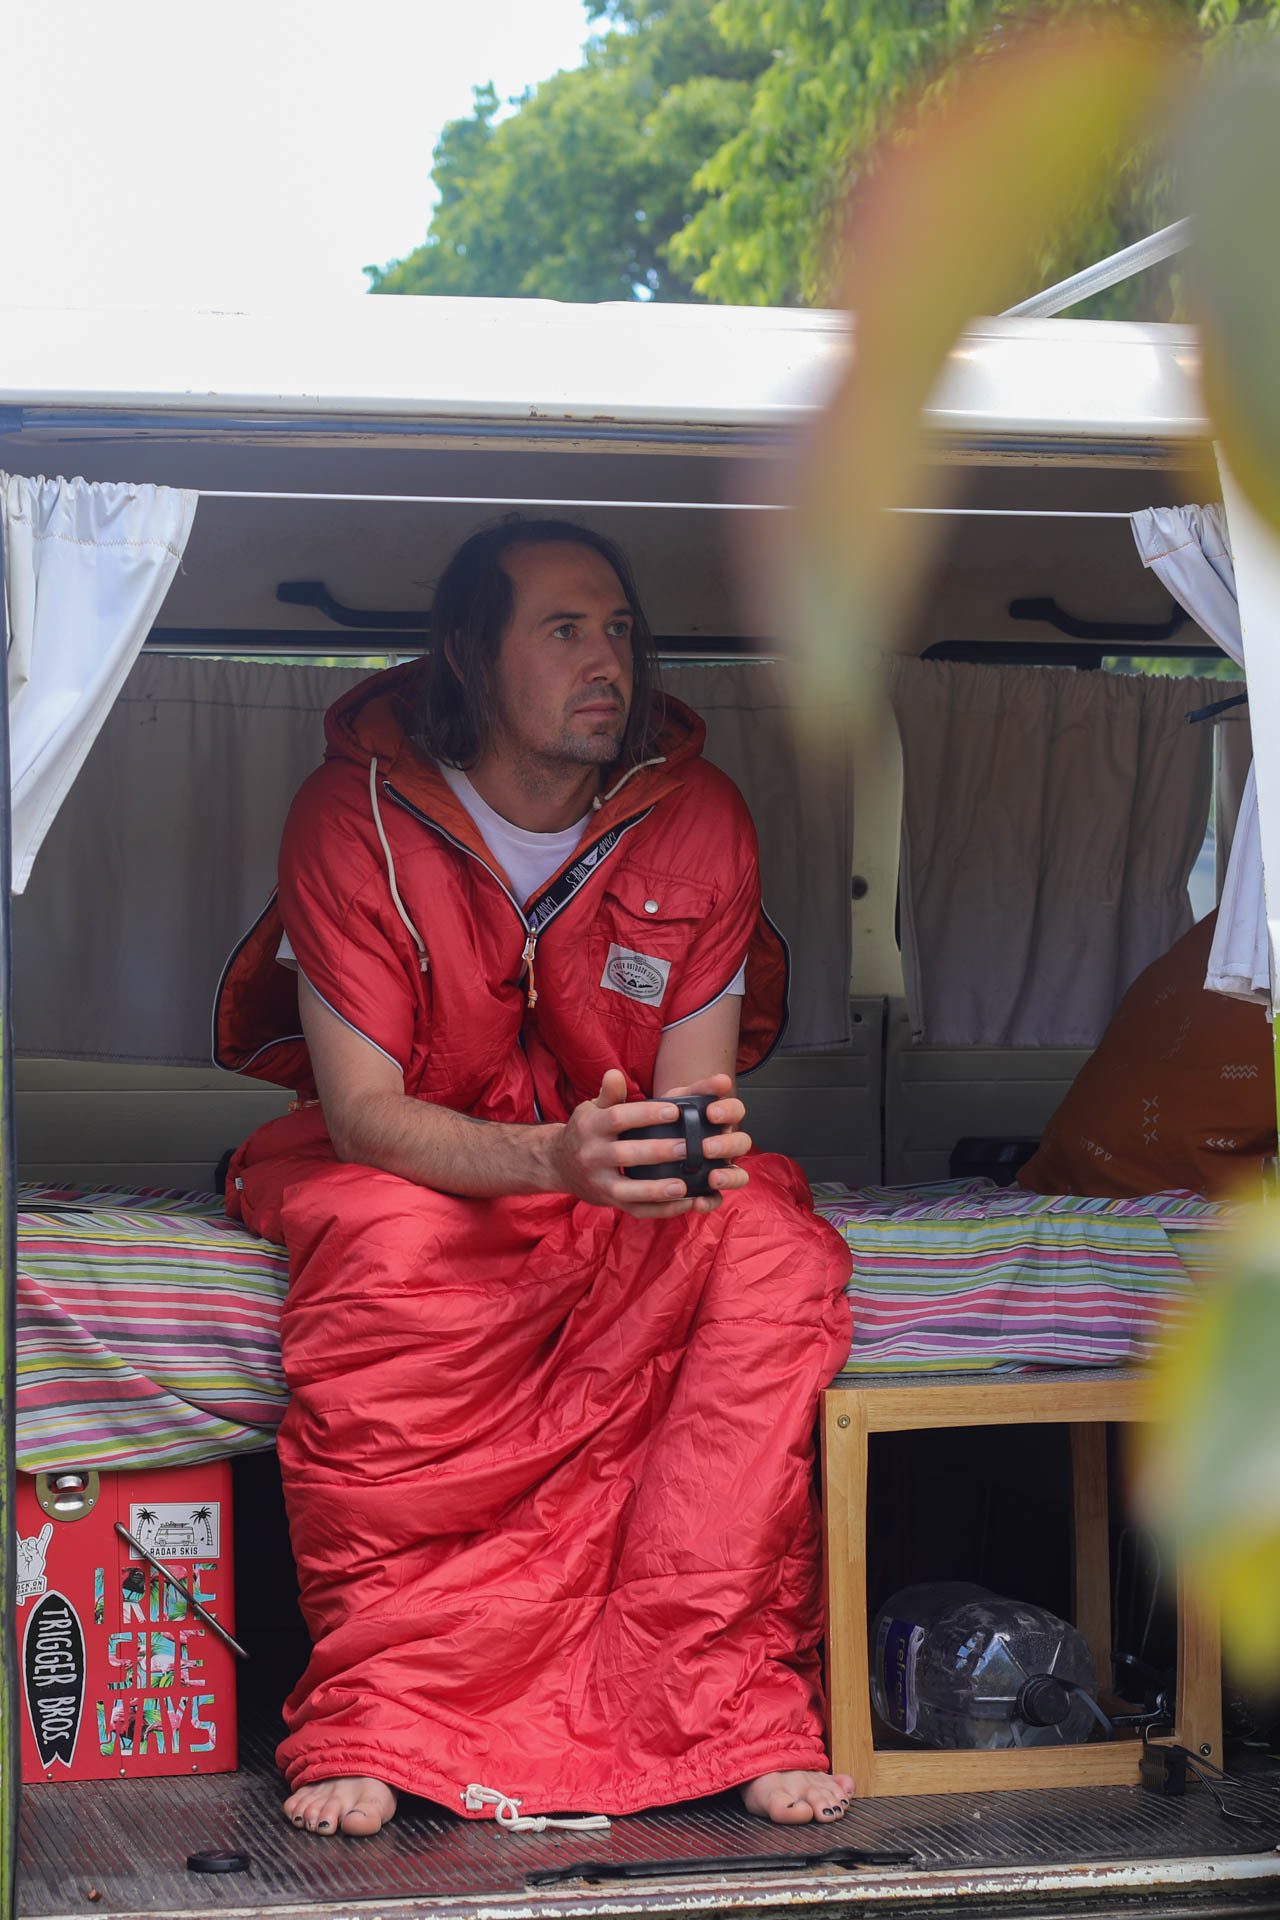 The Reversible Napsack by Poler // Gear Review, mattie gould, sleeping bag, jacket, who knows, kombi, van